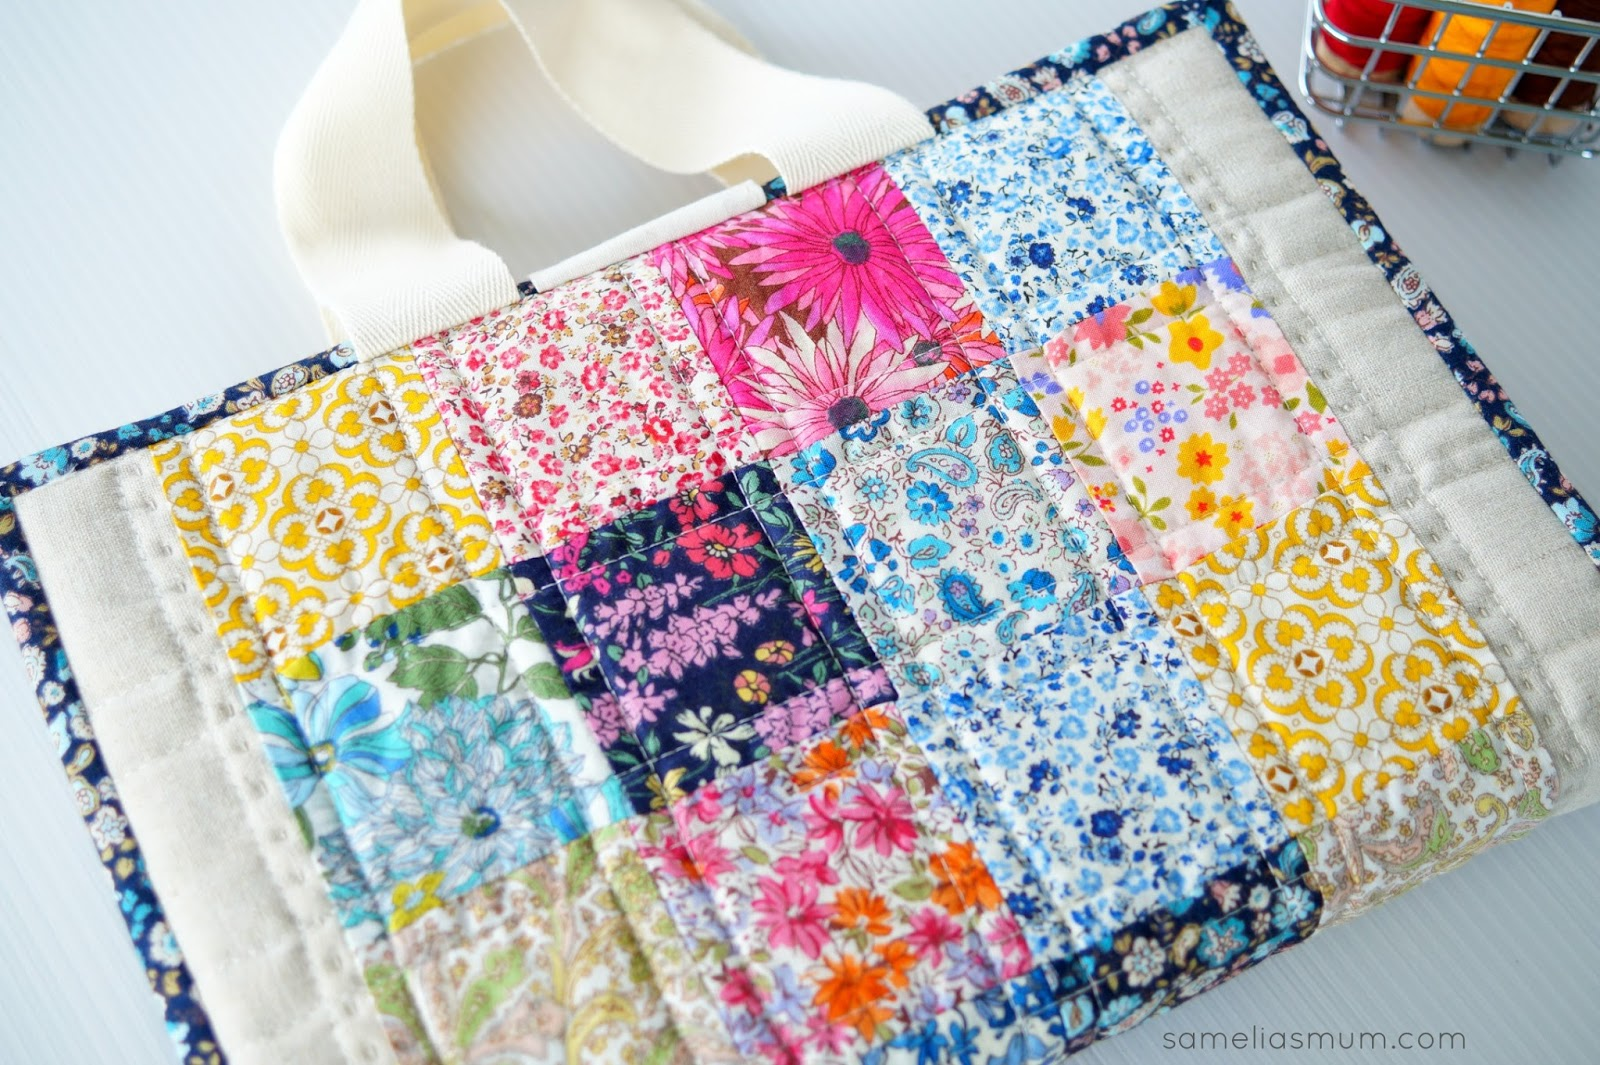 Free Book Cover Design Tutorial ~ Quilted book bag cover tutorial samelia s mum